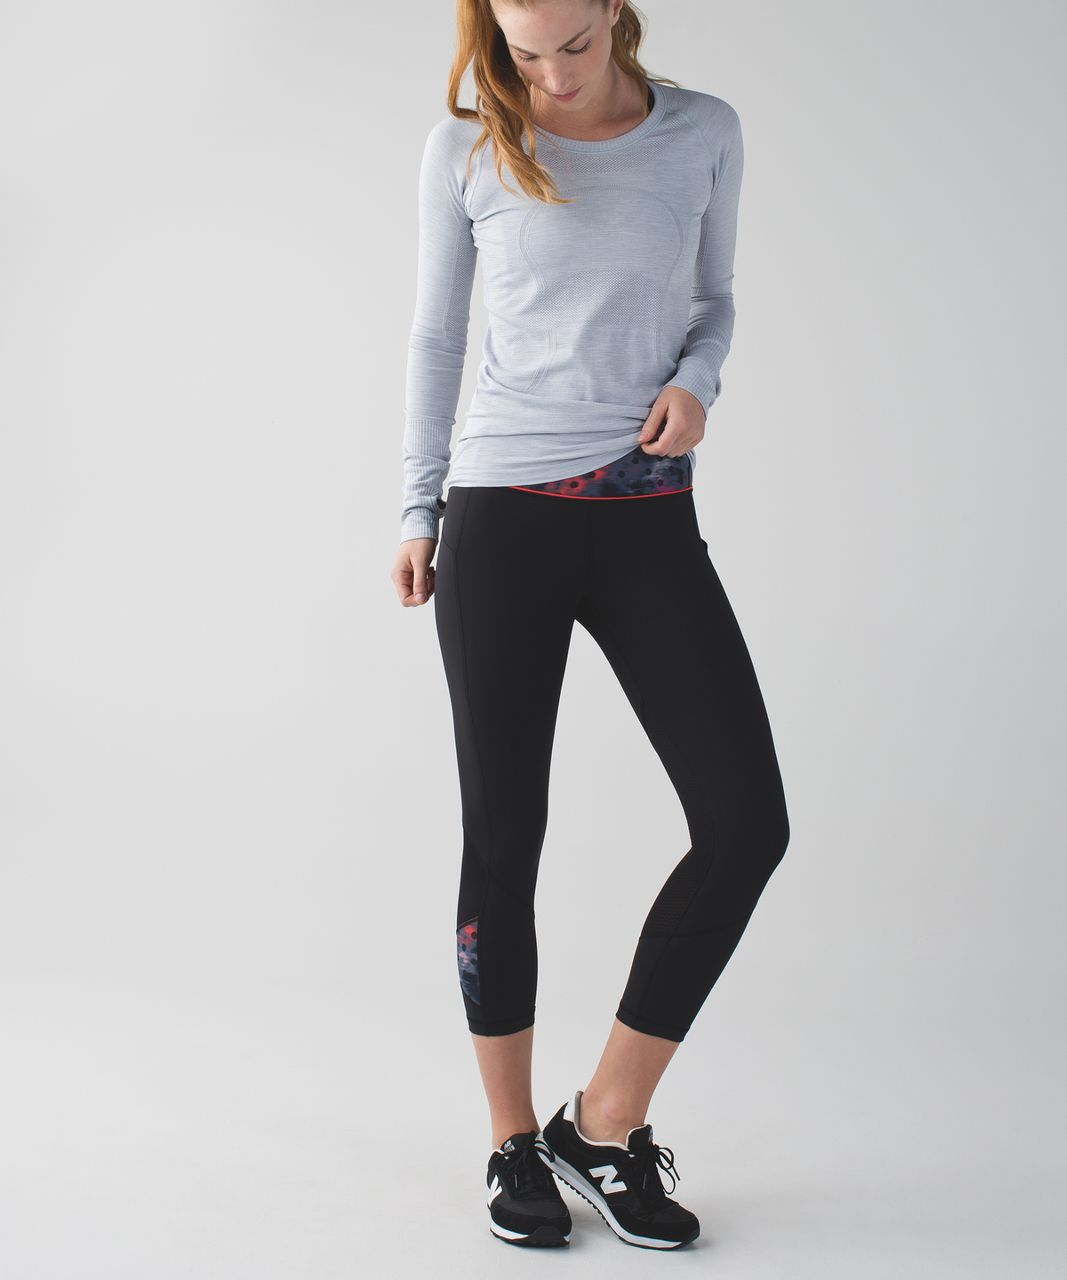 Lululemon Pace Rival Crop - Black / Windy Blooms Regal Plum Multi